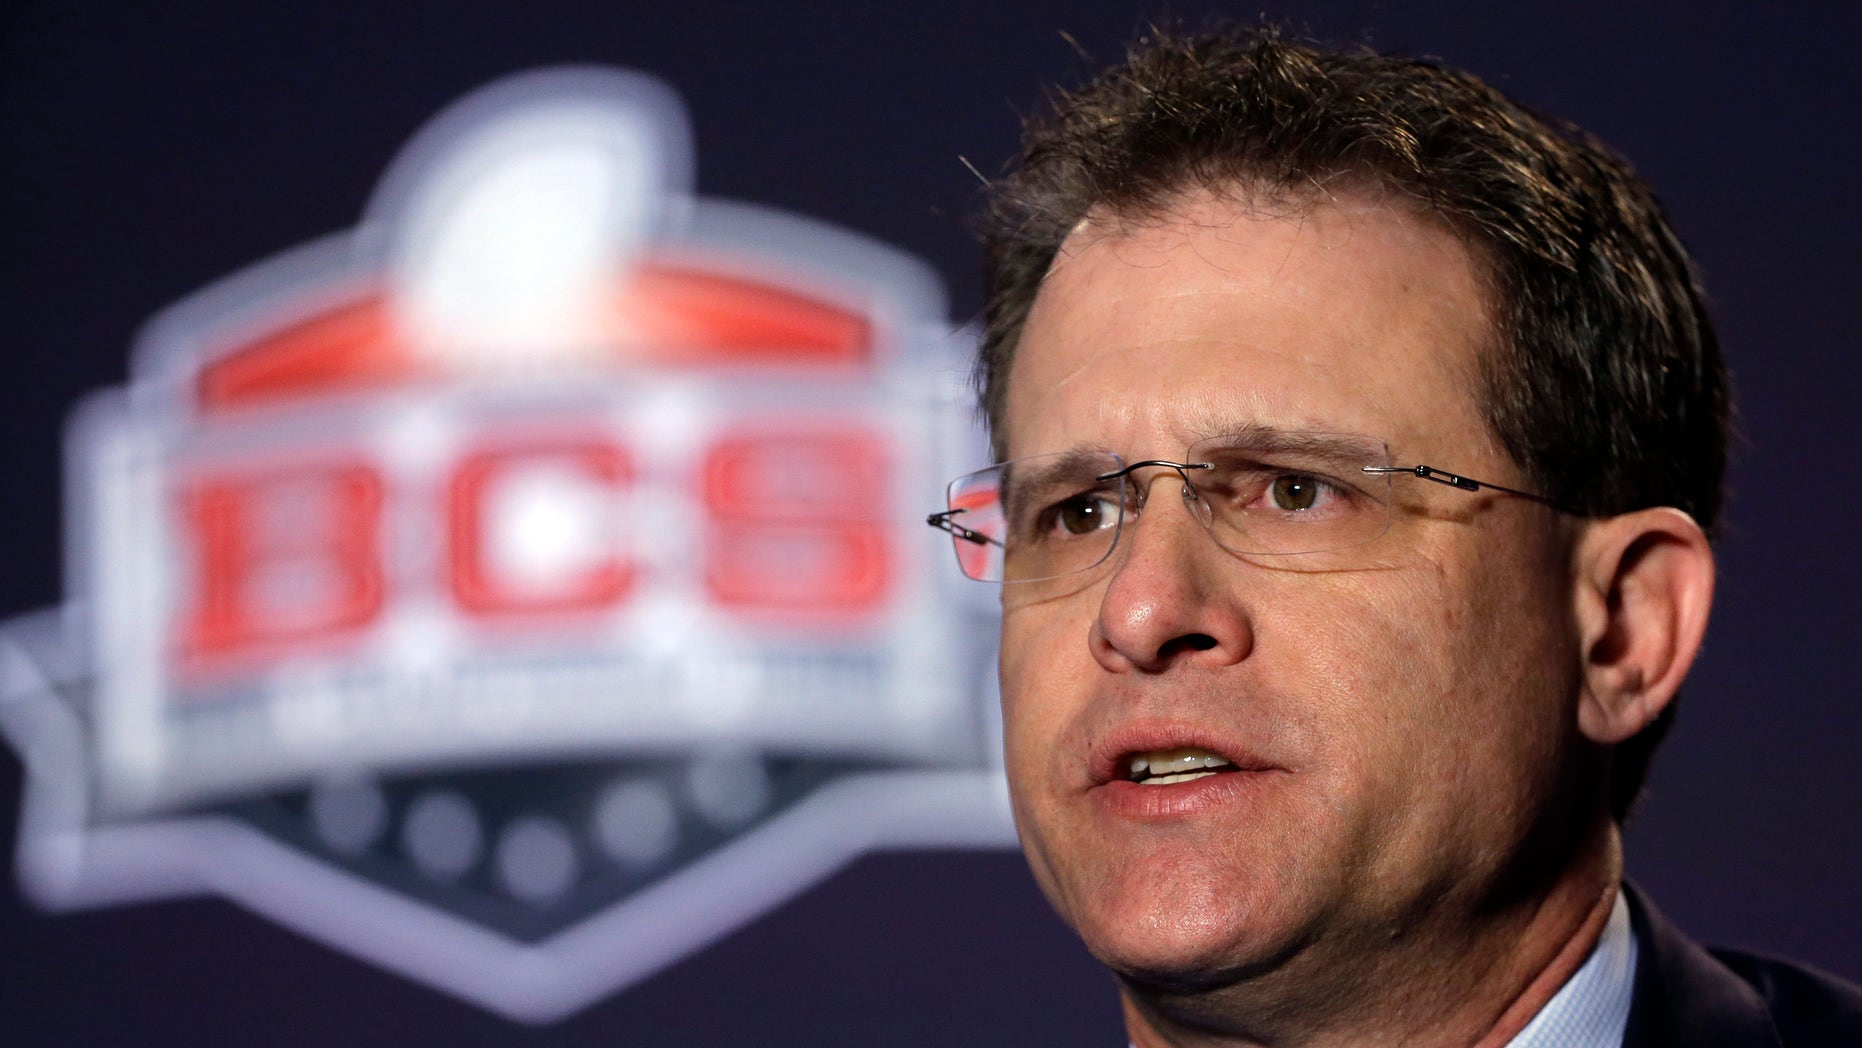 Auburn head coach Gus Malzahn answers a question during a news conference for the NCAA BCS National Championship college football game Sunday, Jan. 5, 2014, in Newport Beach, Calif. Florida State plays Auburn on Monday, Jan. 6, 2014. (AP Photo/David J. Phillip)